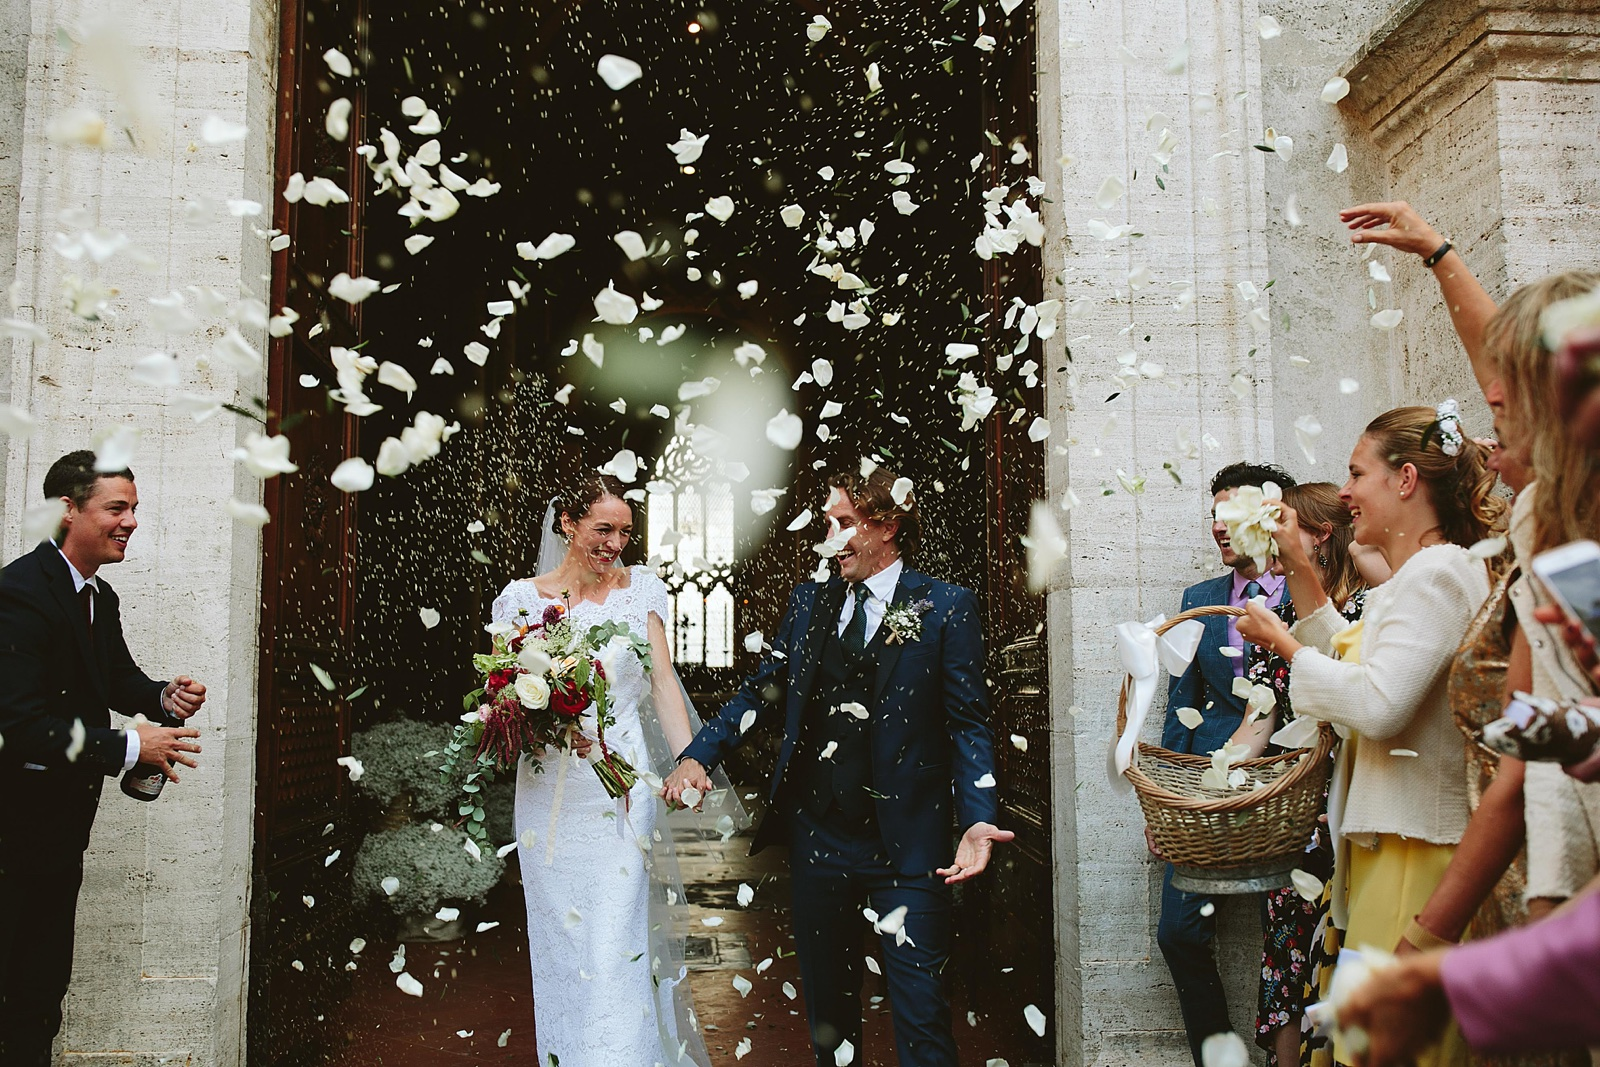 Destination Wedding in Val D'Orcia. Siena, Tuscany. Olivia Sodi, Professional Wedding Planner & Designer in Tuscany and Italy